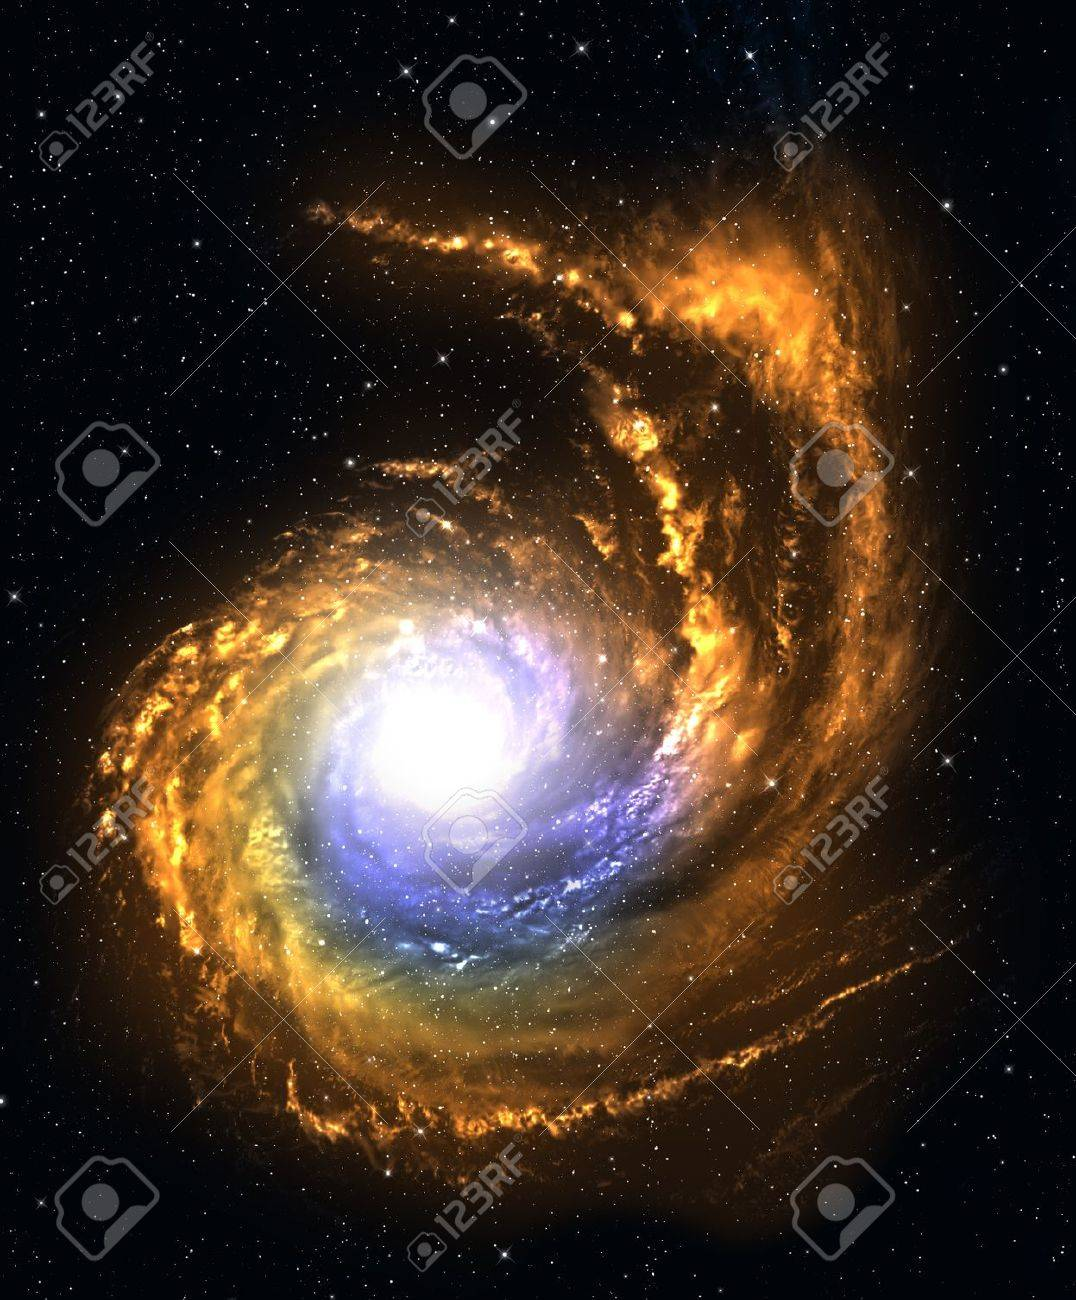 Spiral galaxy in deep space with starfield background. - 18511875